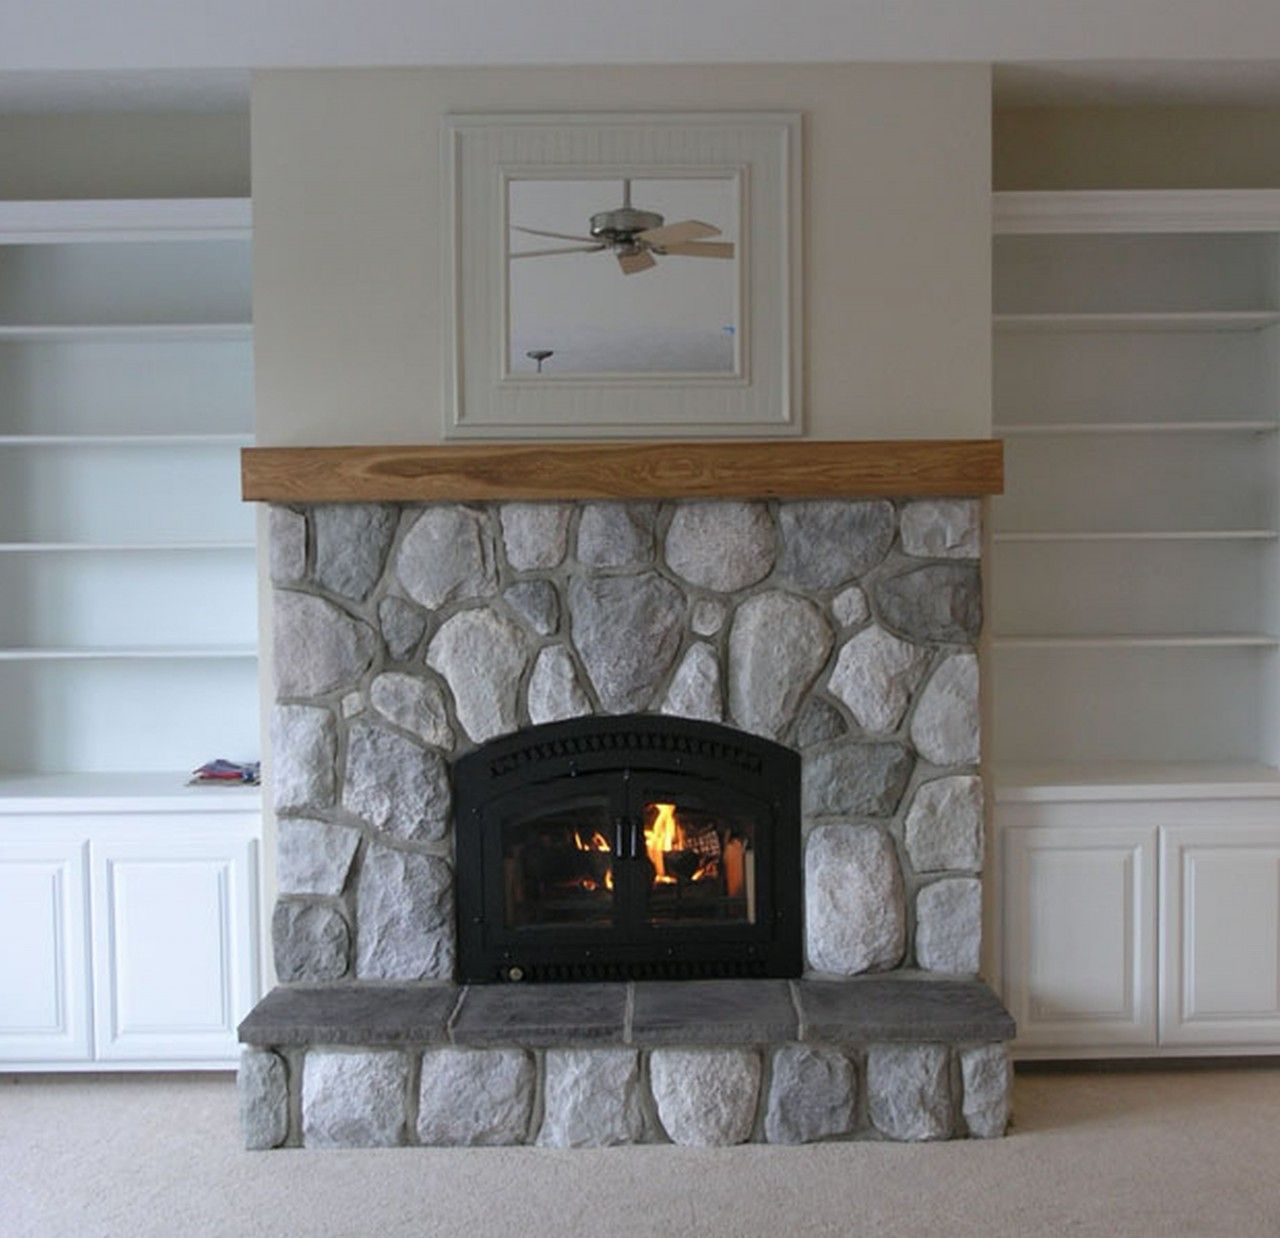 Pin by Brenda Parent on bedroom fireplace remodel Stone